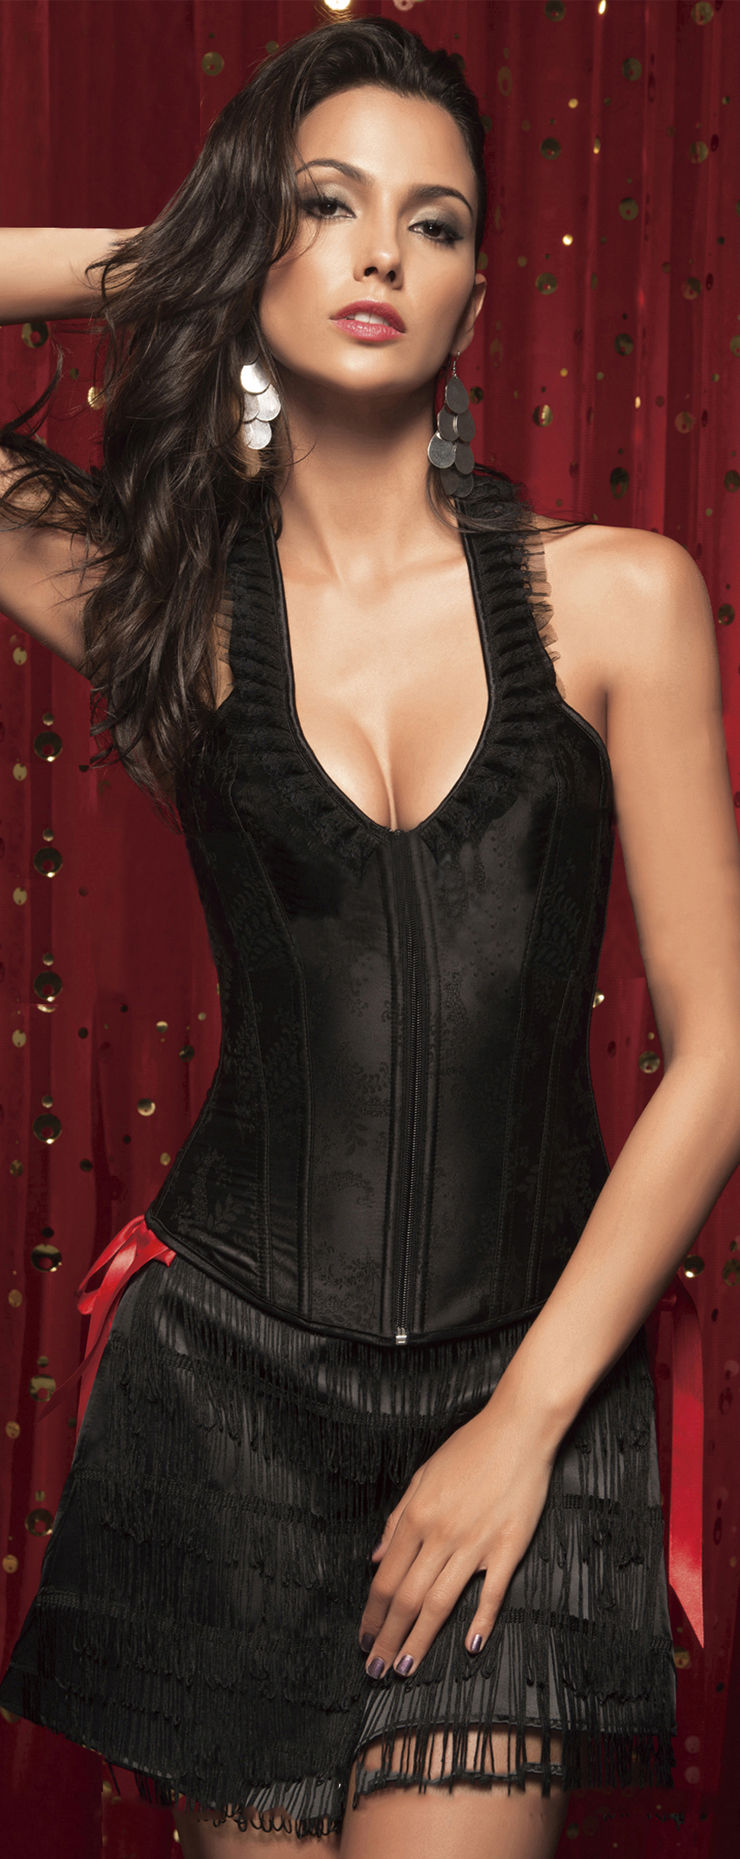 Wholesale Black Brocade Full-Back Corset OUC681